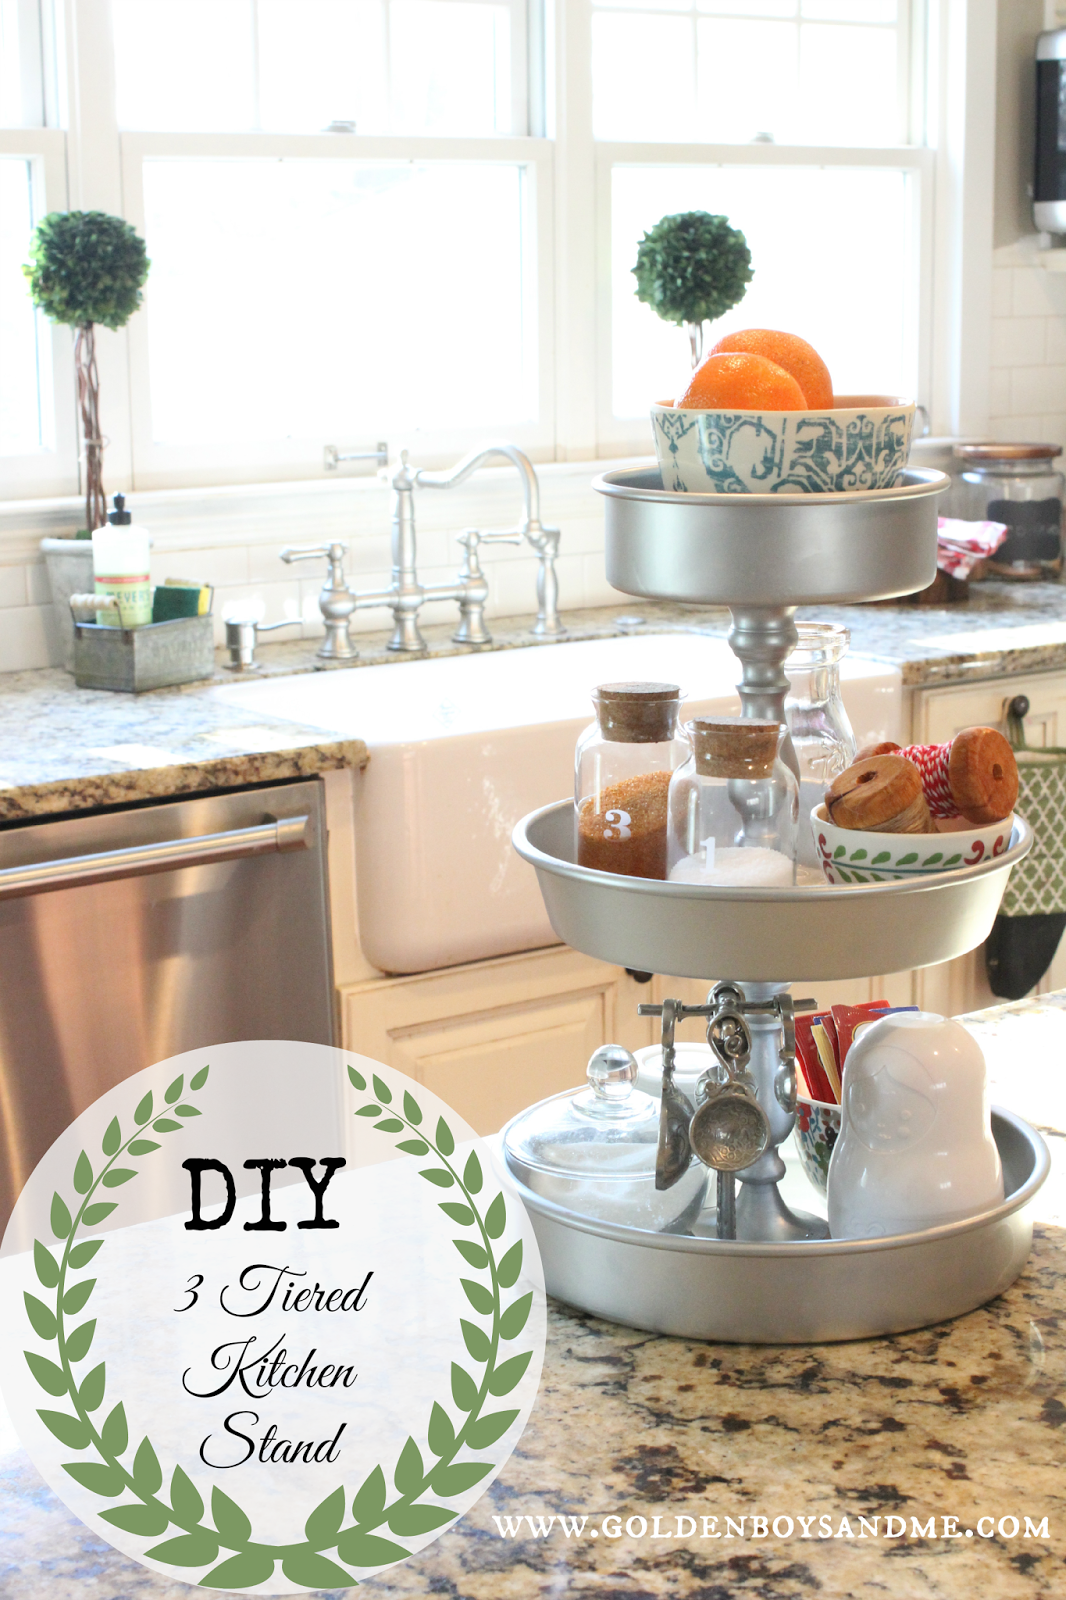 DIY 3 tiered kitchen stand tutorial from